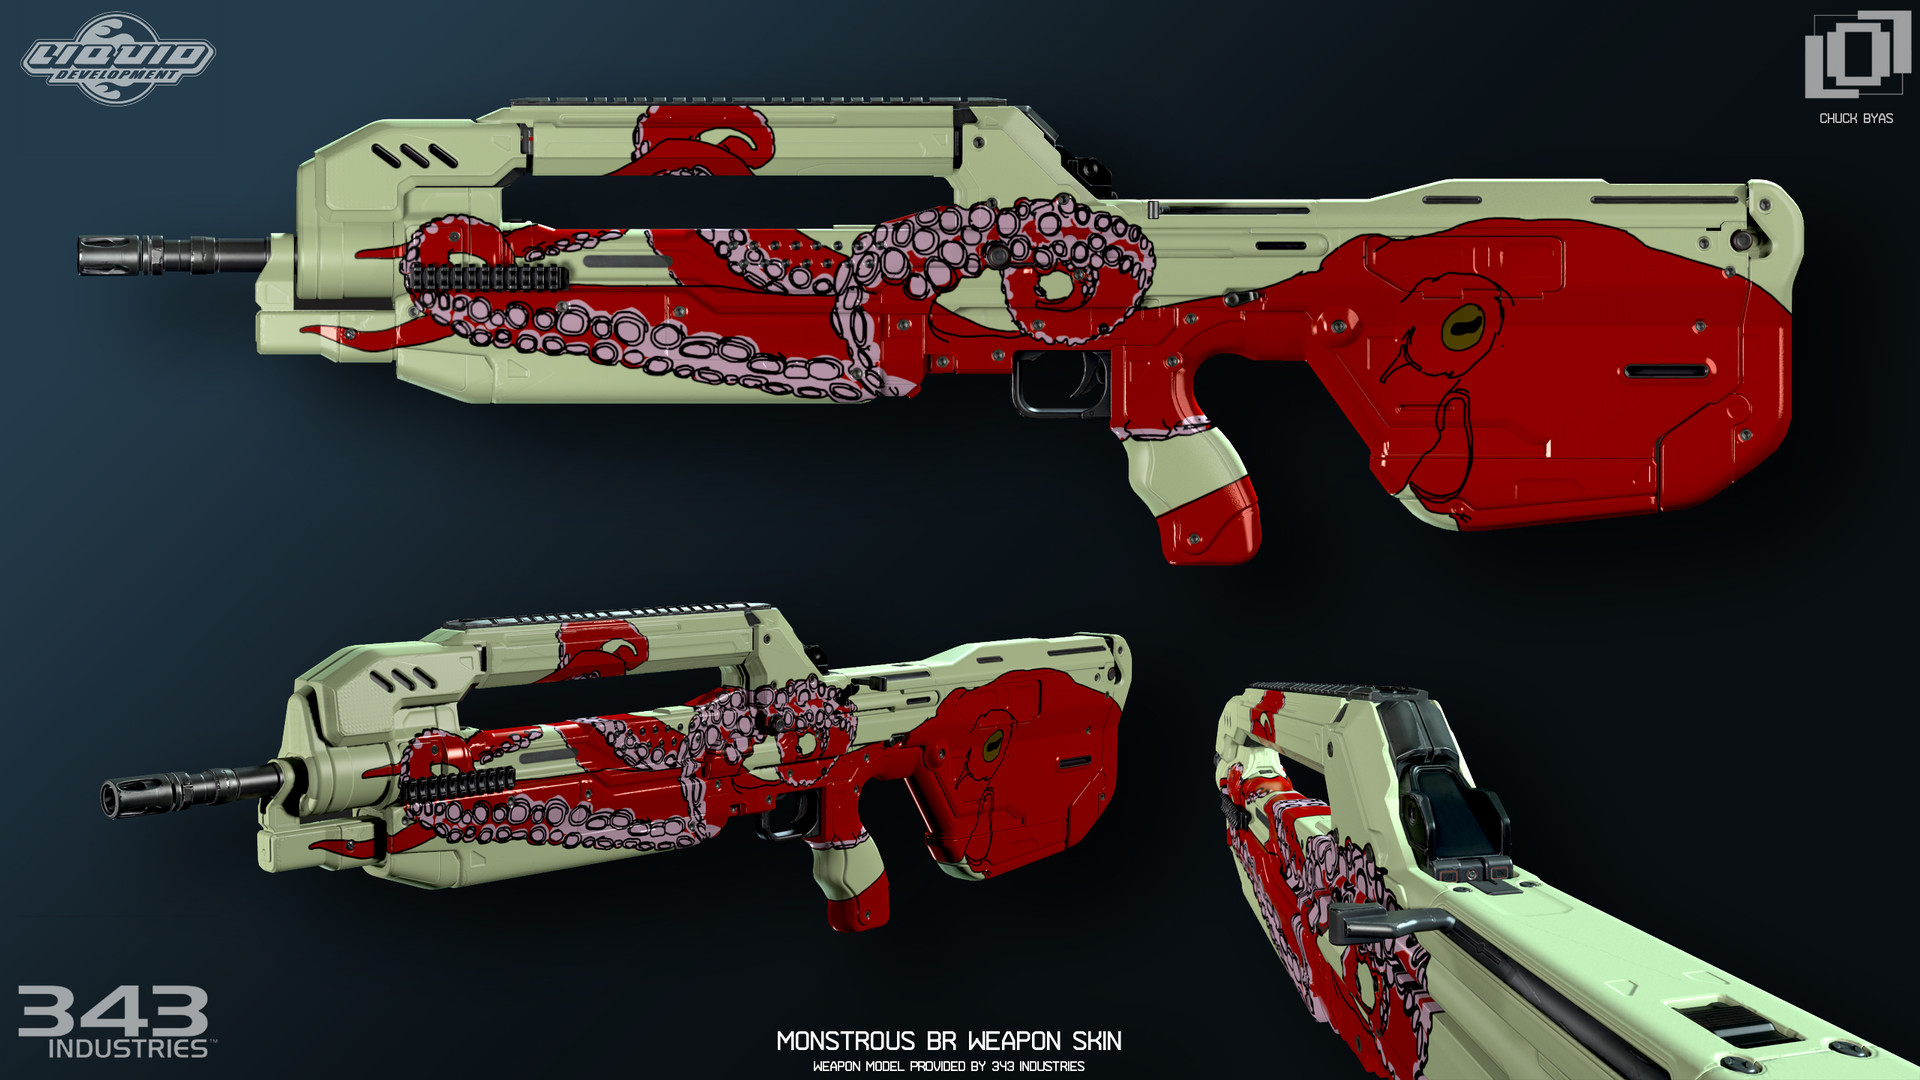 chuck-byas-monstrous-br-weapon-skin-chuc